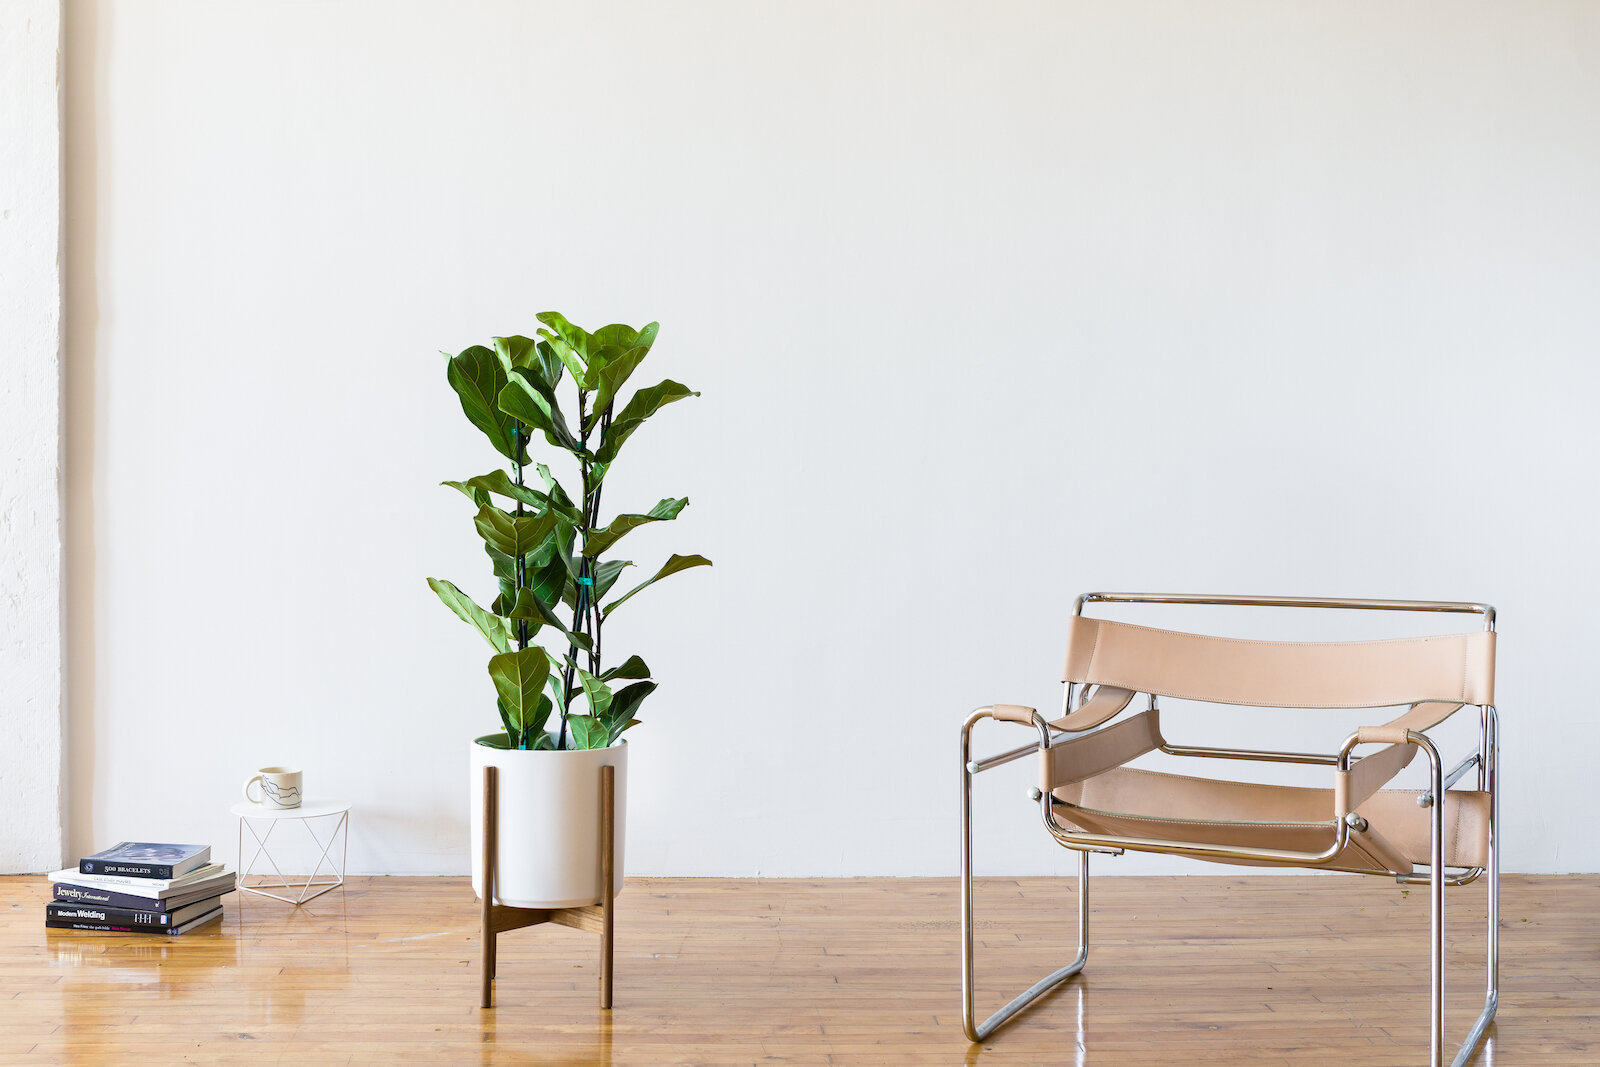 Indoor plants, potted & delivered - Premium plants paired with stylish pots, plus lifetime plant care support. Order online at leonandgeorge.com